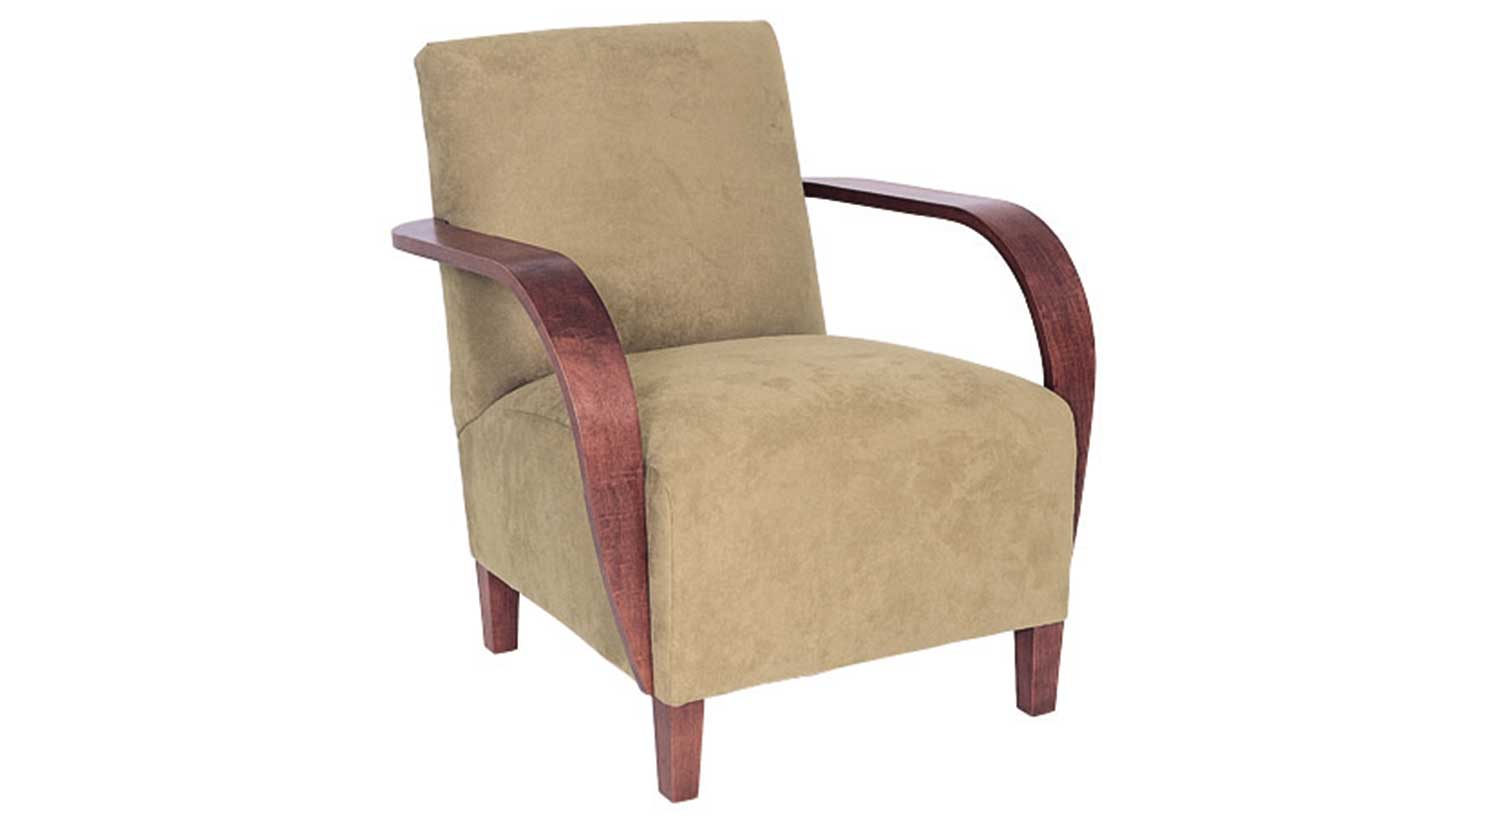 Circle Furniture - Basie Chair  Upholstered Chairs Boston  Circle ...